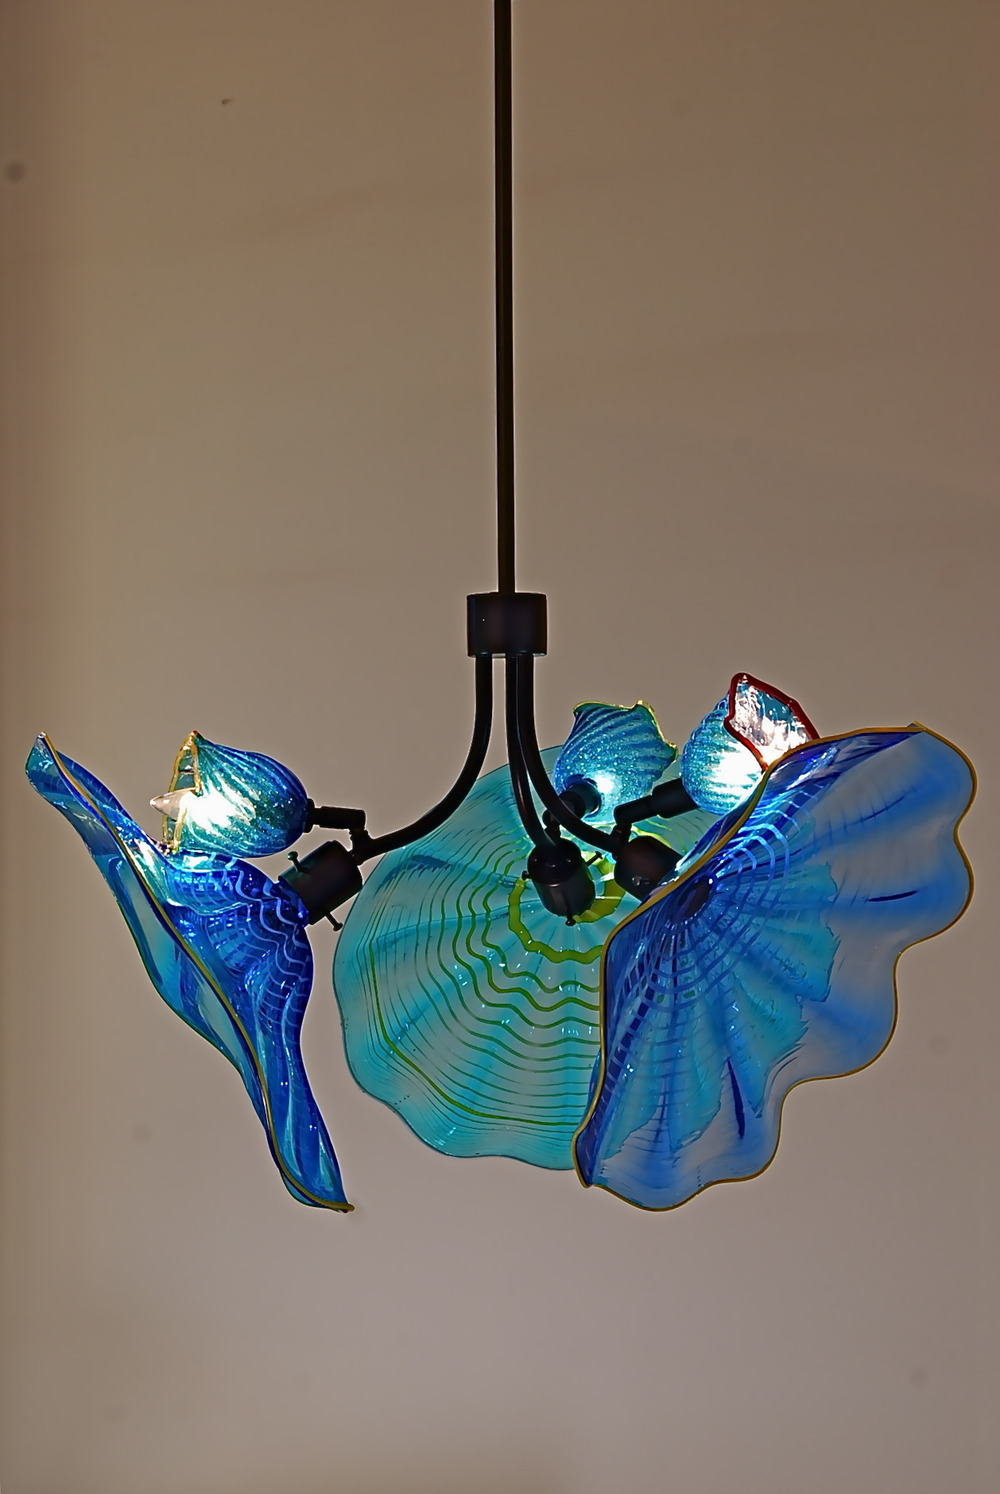 3light chandelier artist rick strini 7.JPG